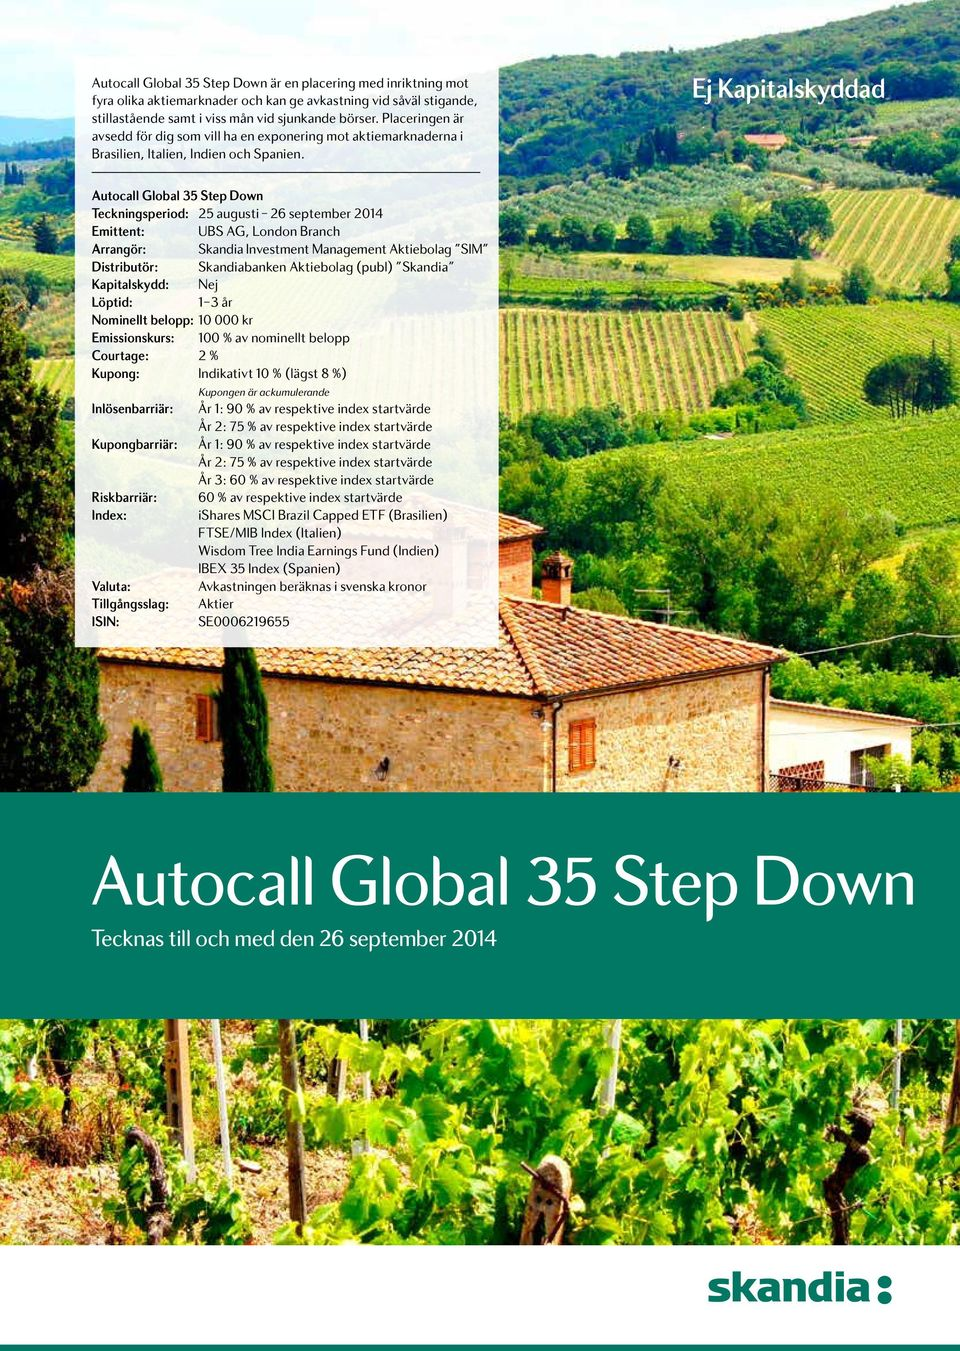 Ej Kapitalskyddad Autocall Global 35 Step Down Teckningsperiod: 25 augusti 26 september 2014 Emittent: UBS AG, London Branch Arrangör: Skandia Investment Management Aktiebolag SIM Distributör: